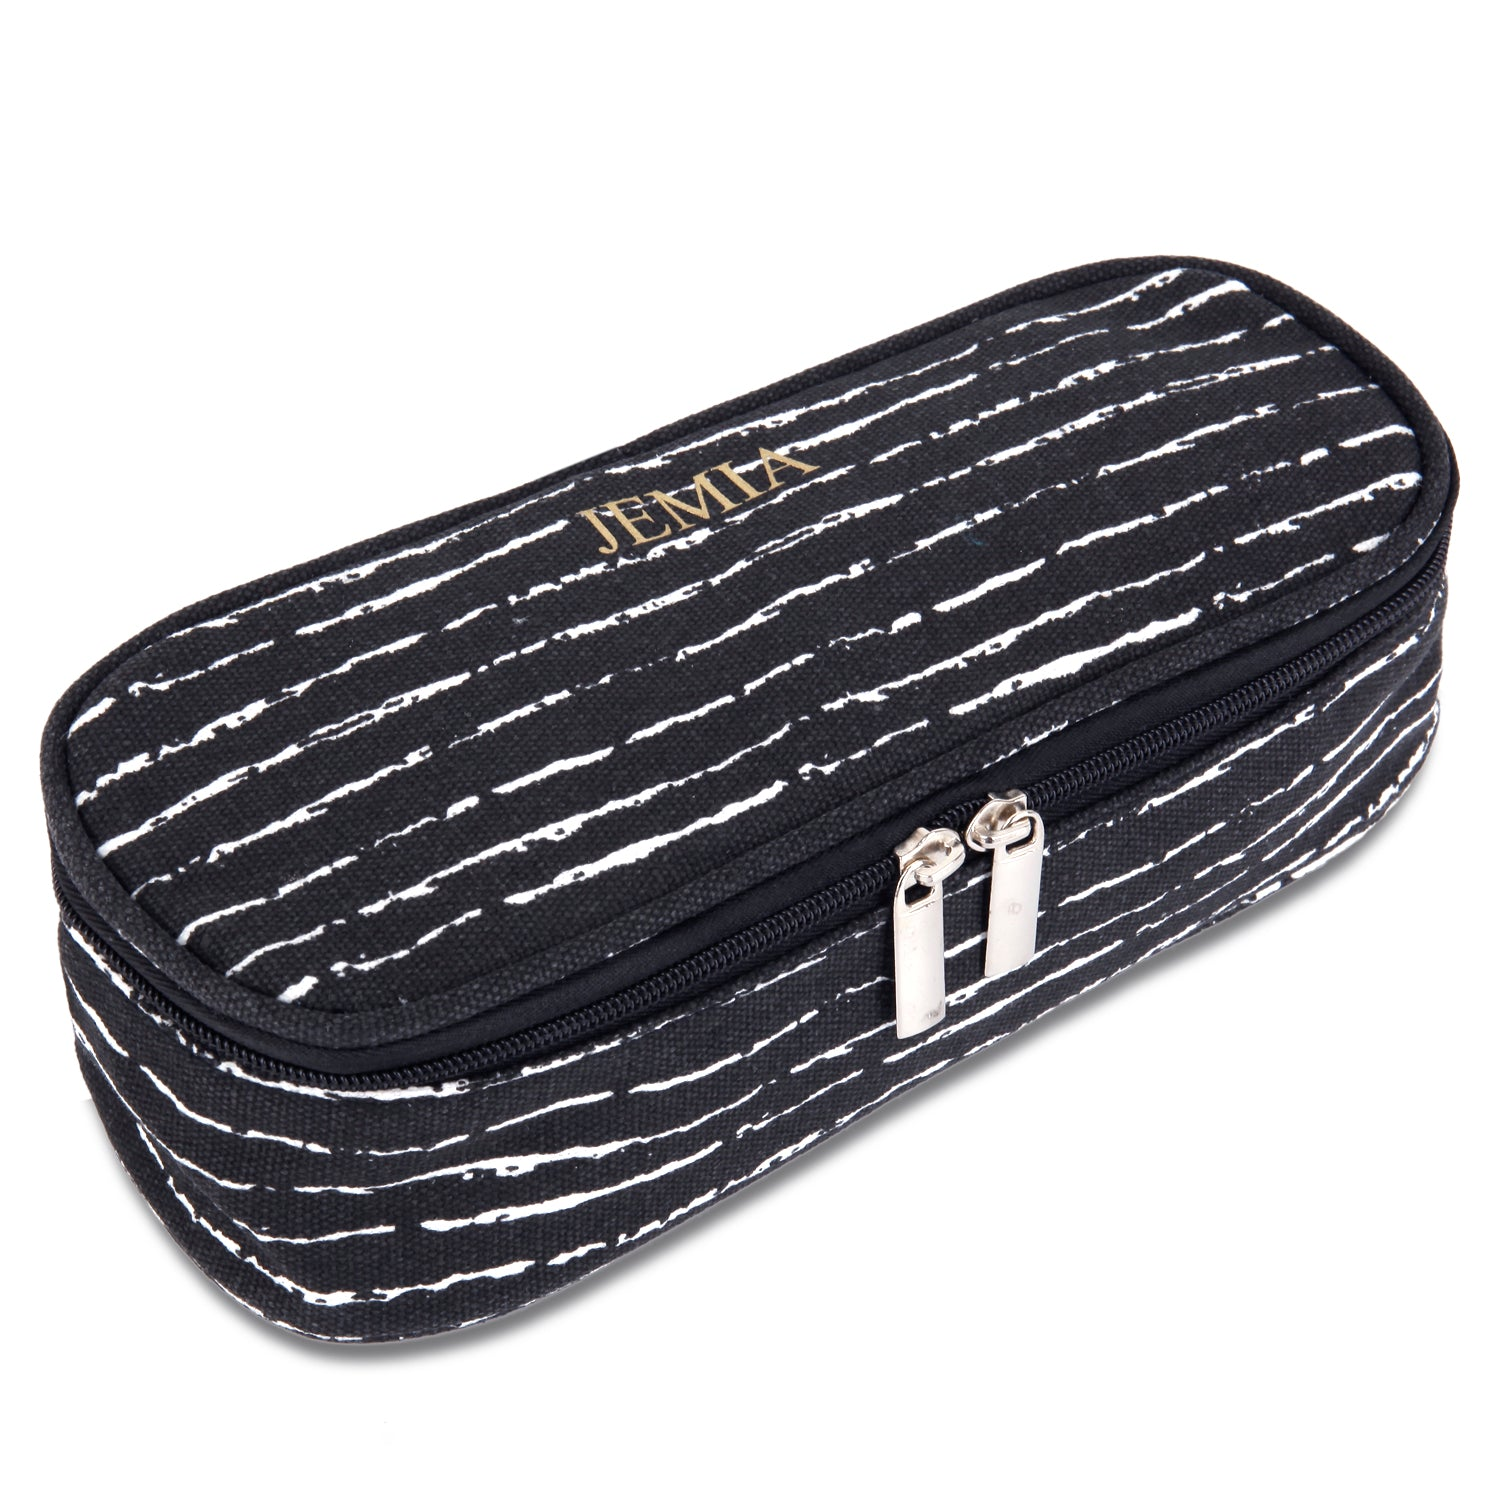 Black & Random White Pencil Case with Mesh Slip Pocket